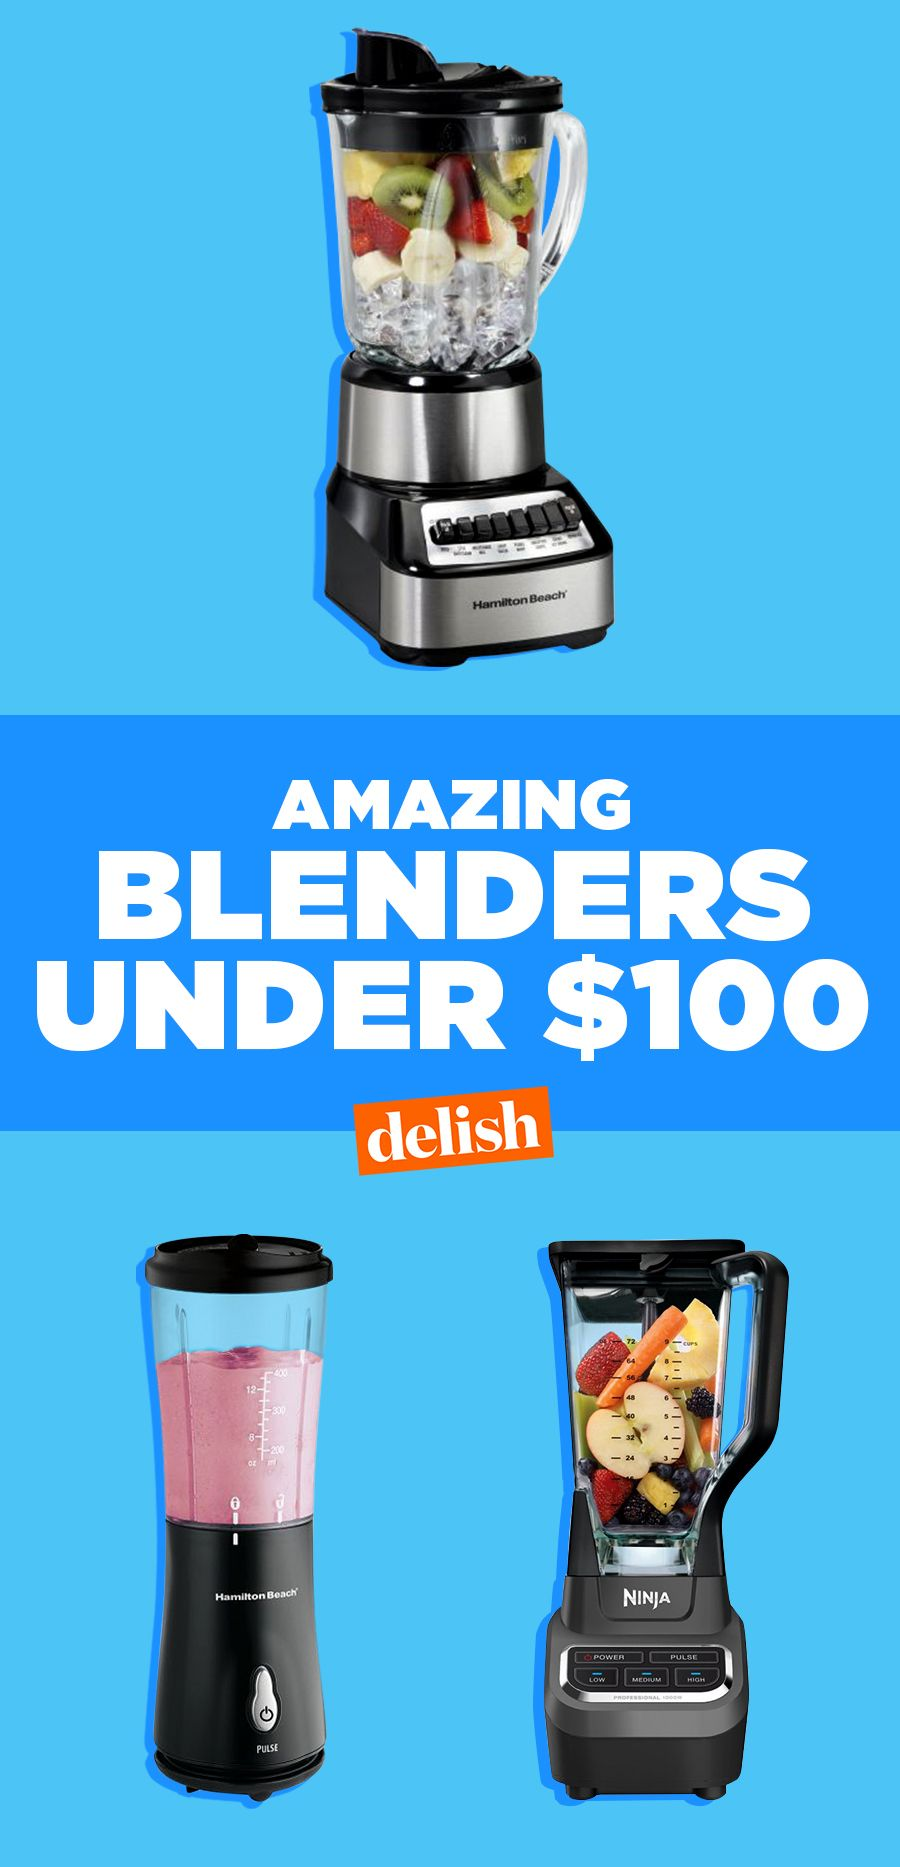 10 Best Blenders Under $100 - Top Rated Cheap Blenders 2017—Delish.com